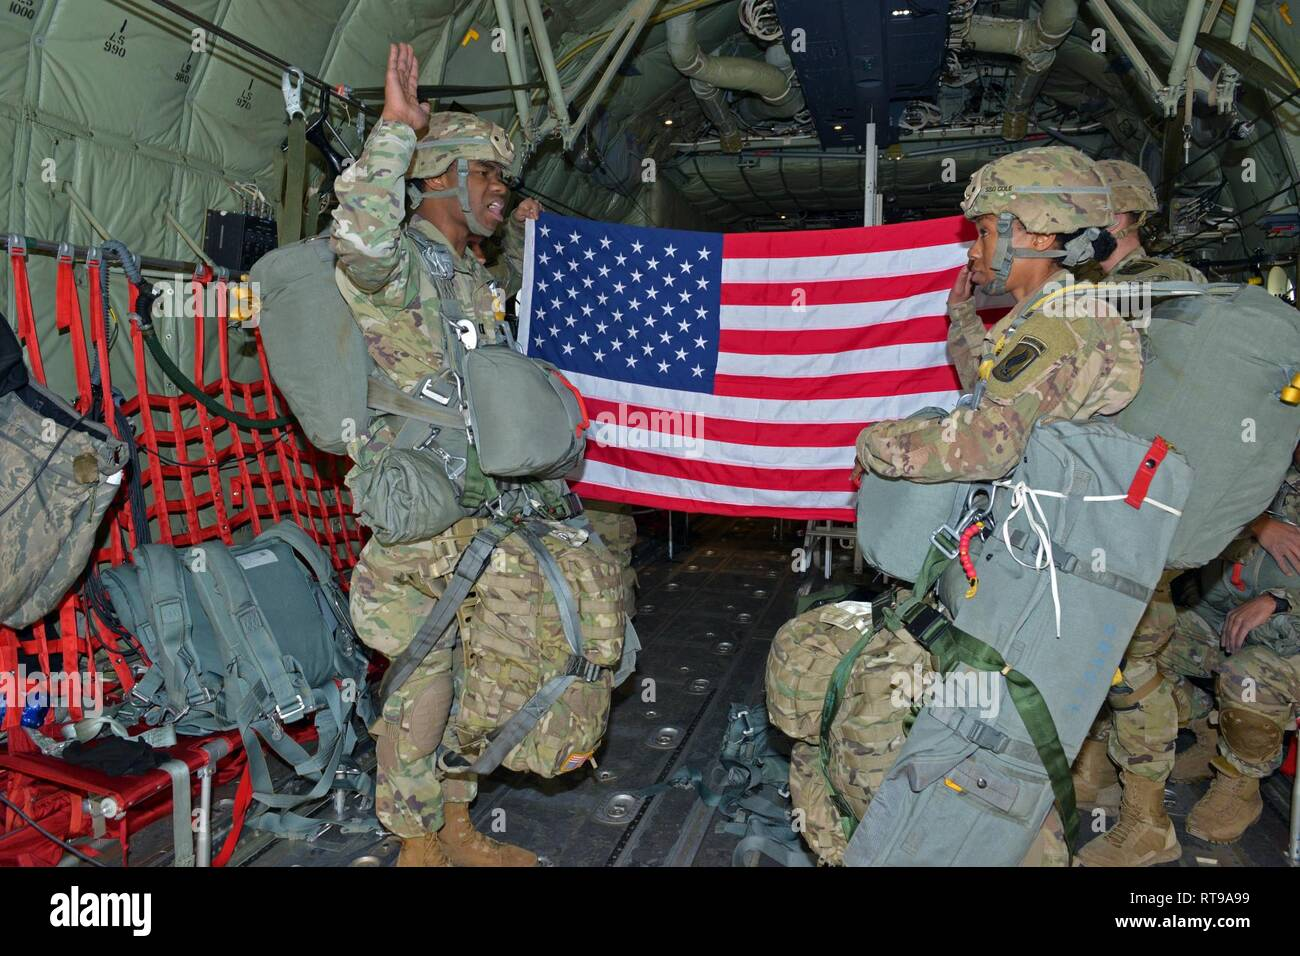 During a airborne operation, Staff Sgt  Miata K  Cole (right